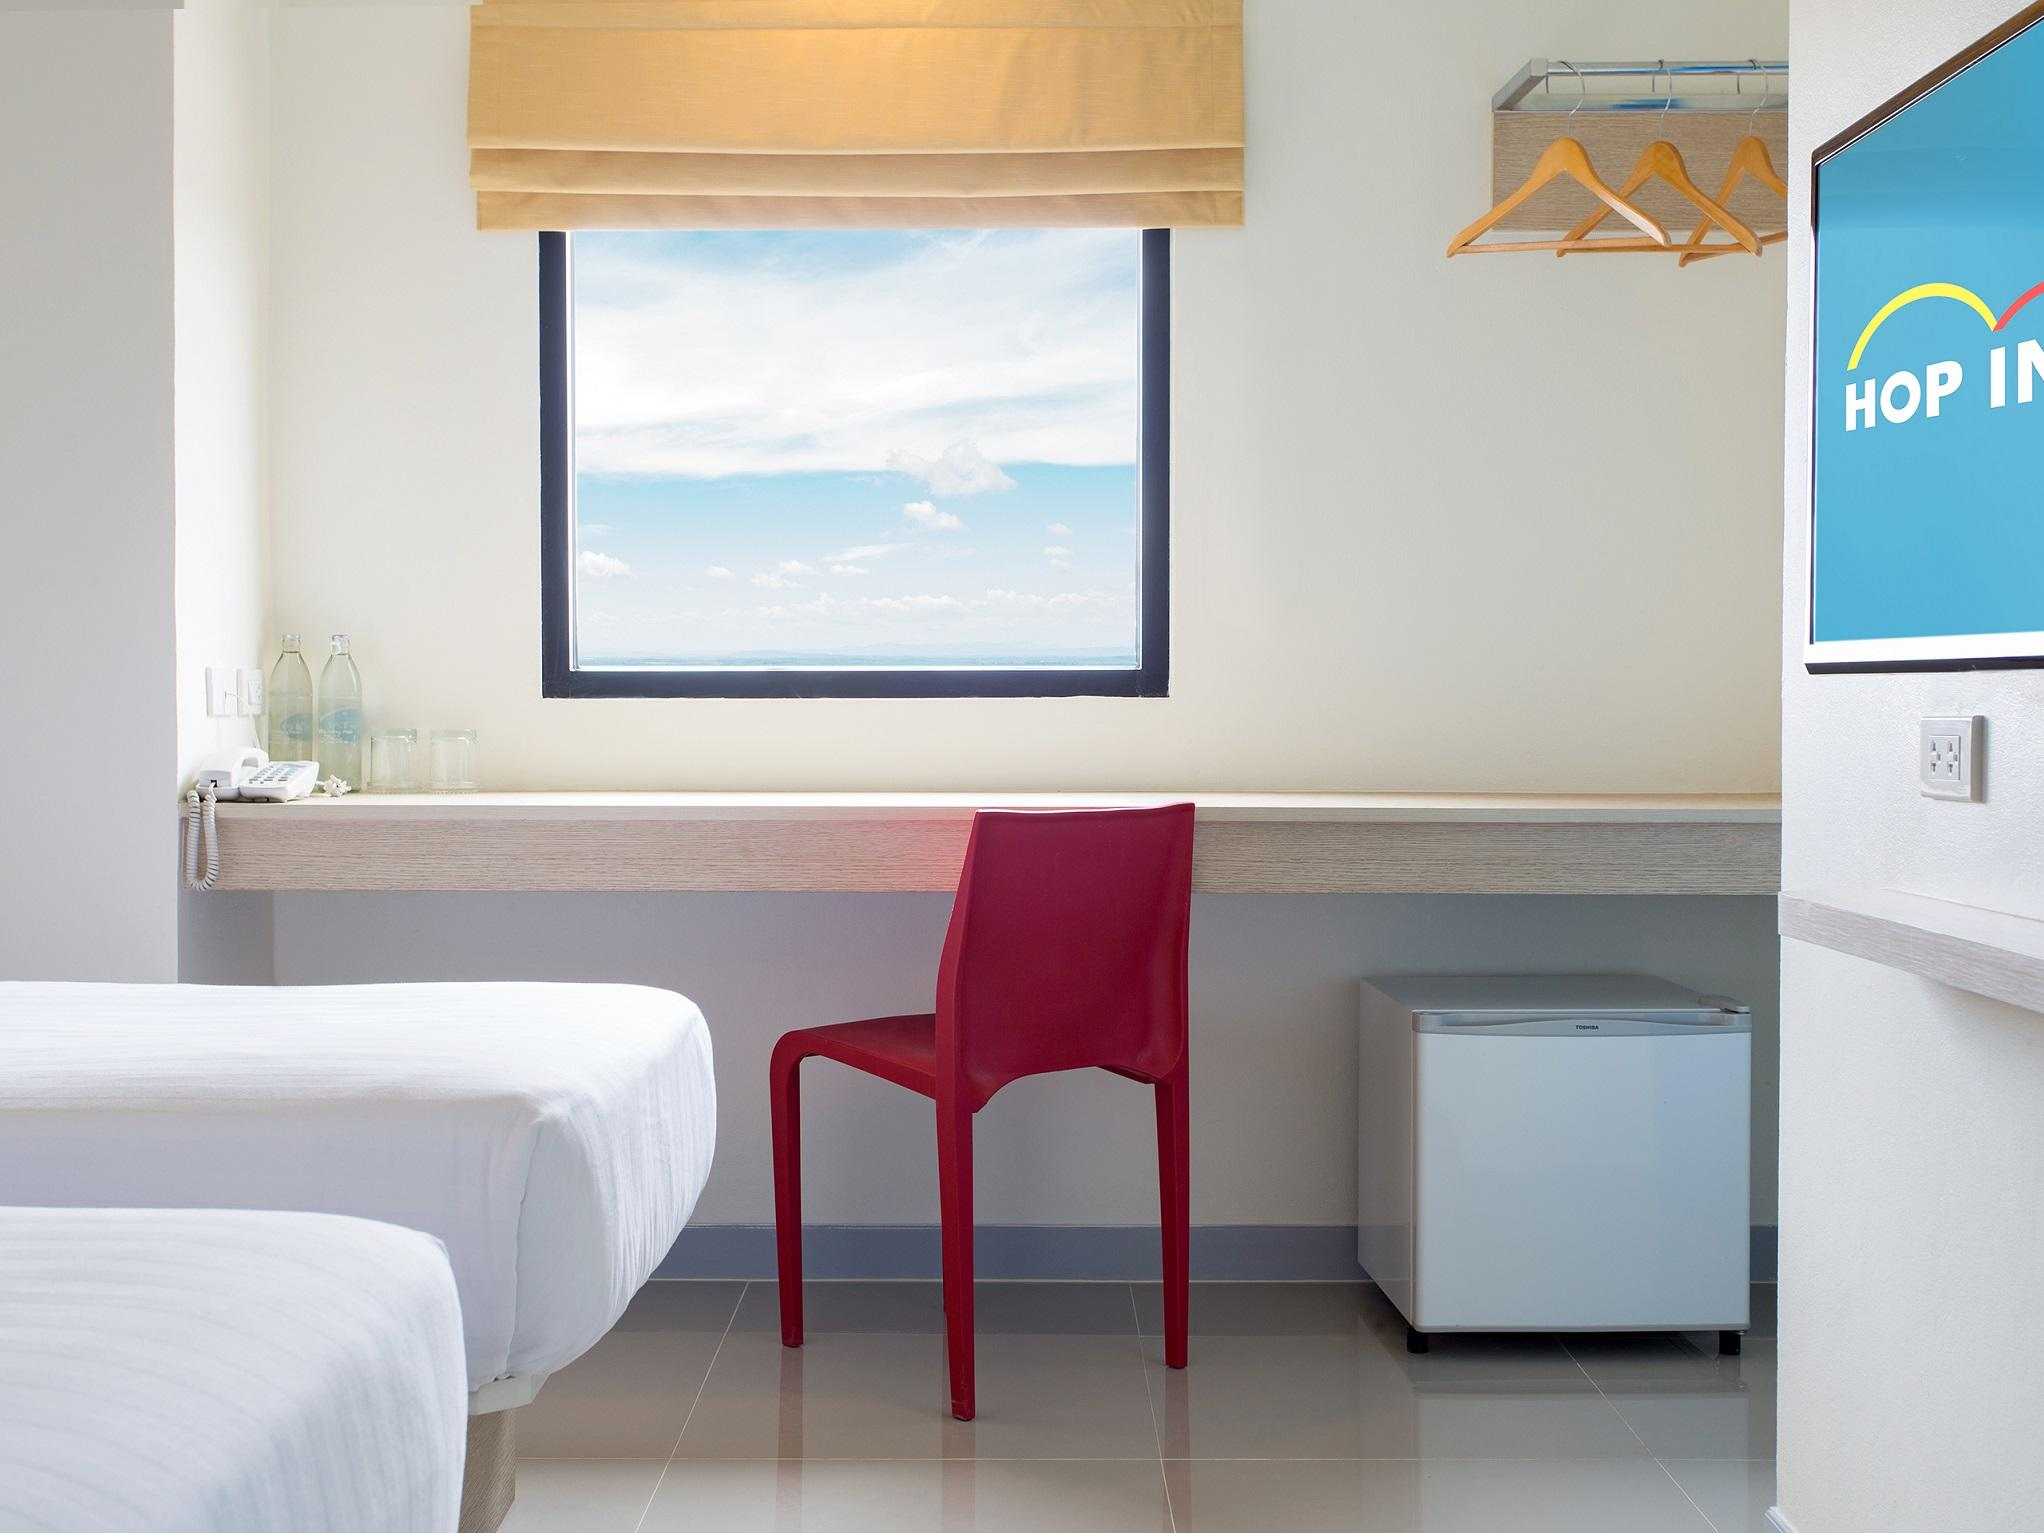 6. TwinRoom at Hop Inn Hotel